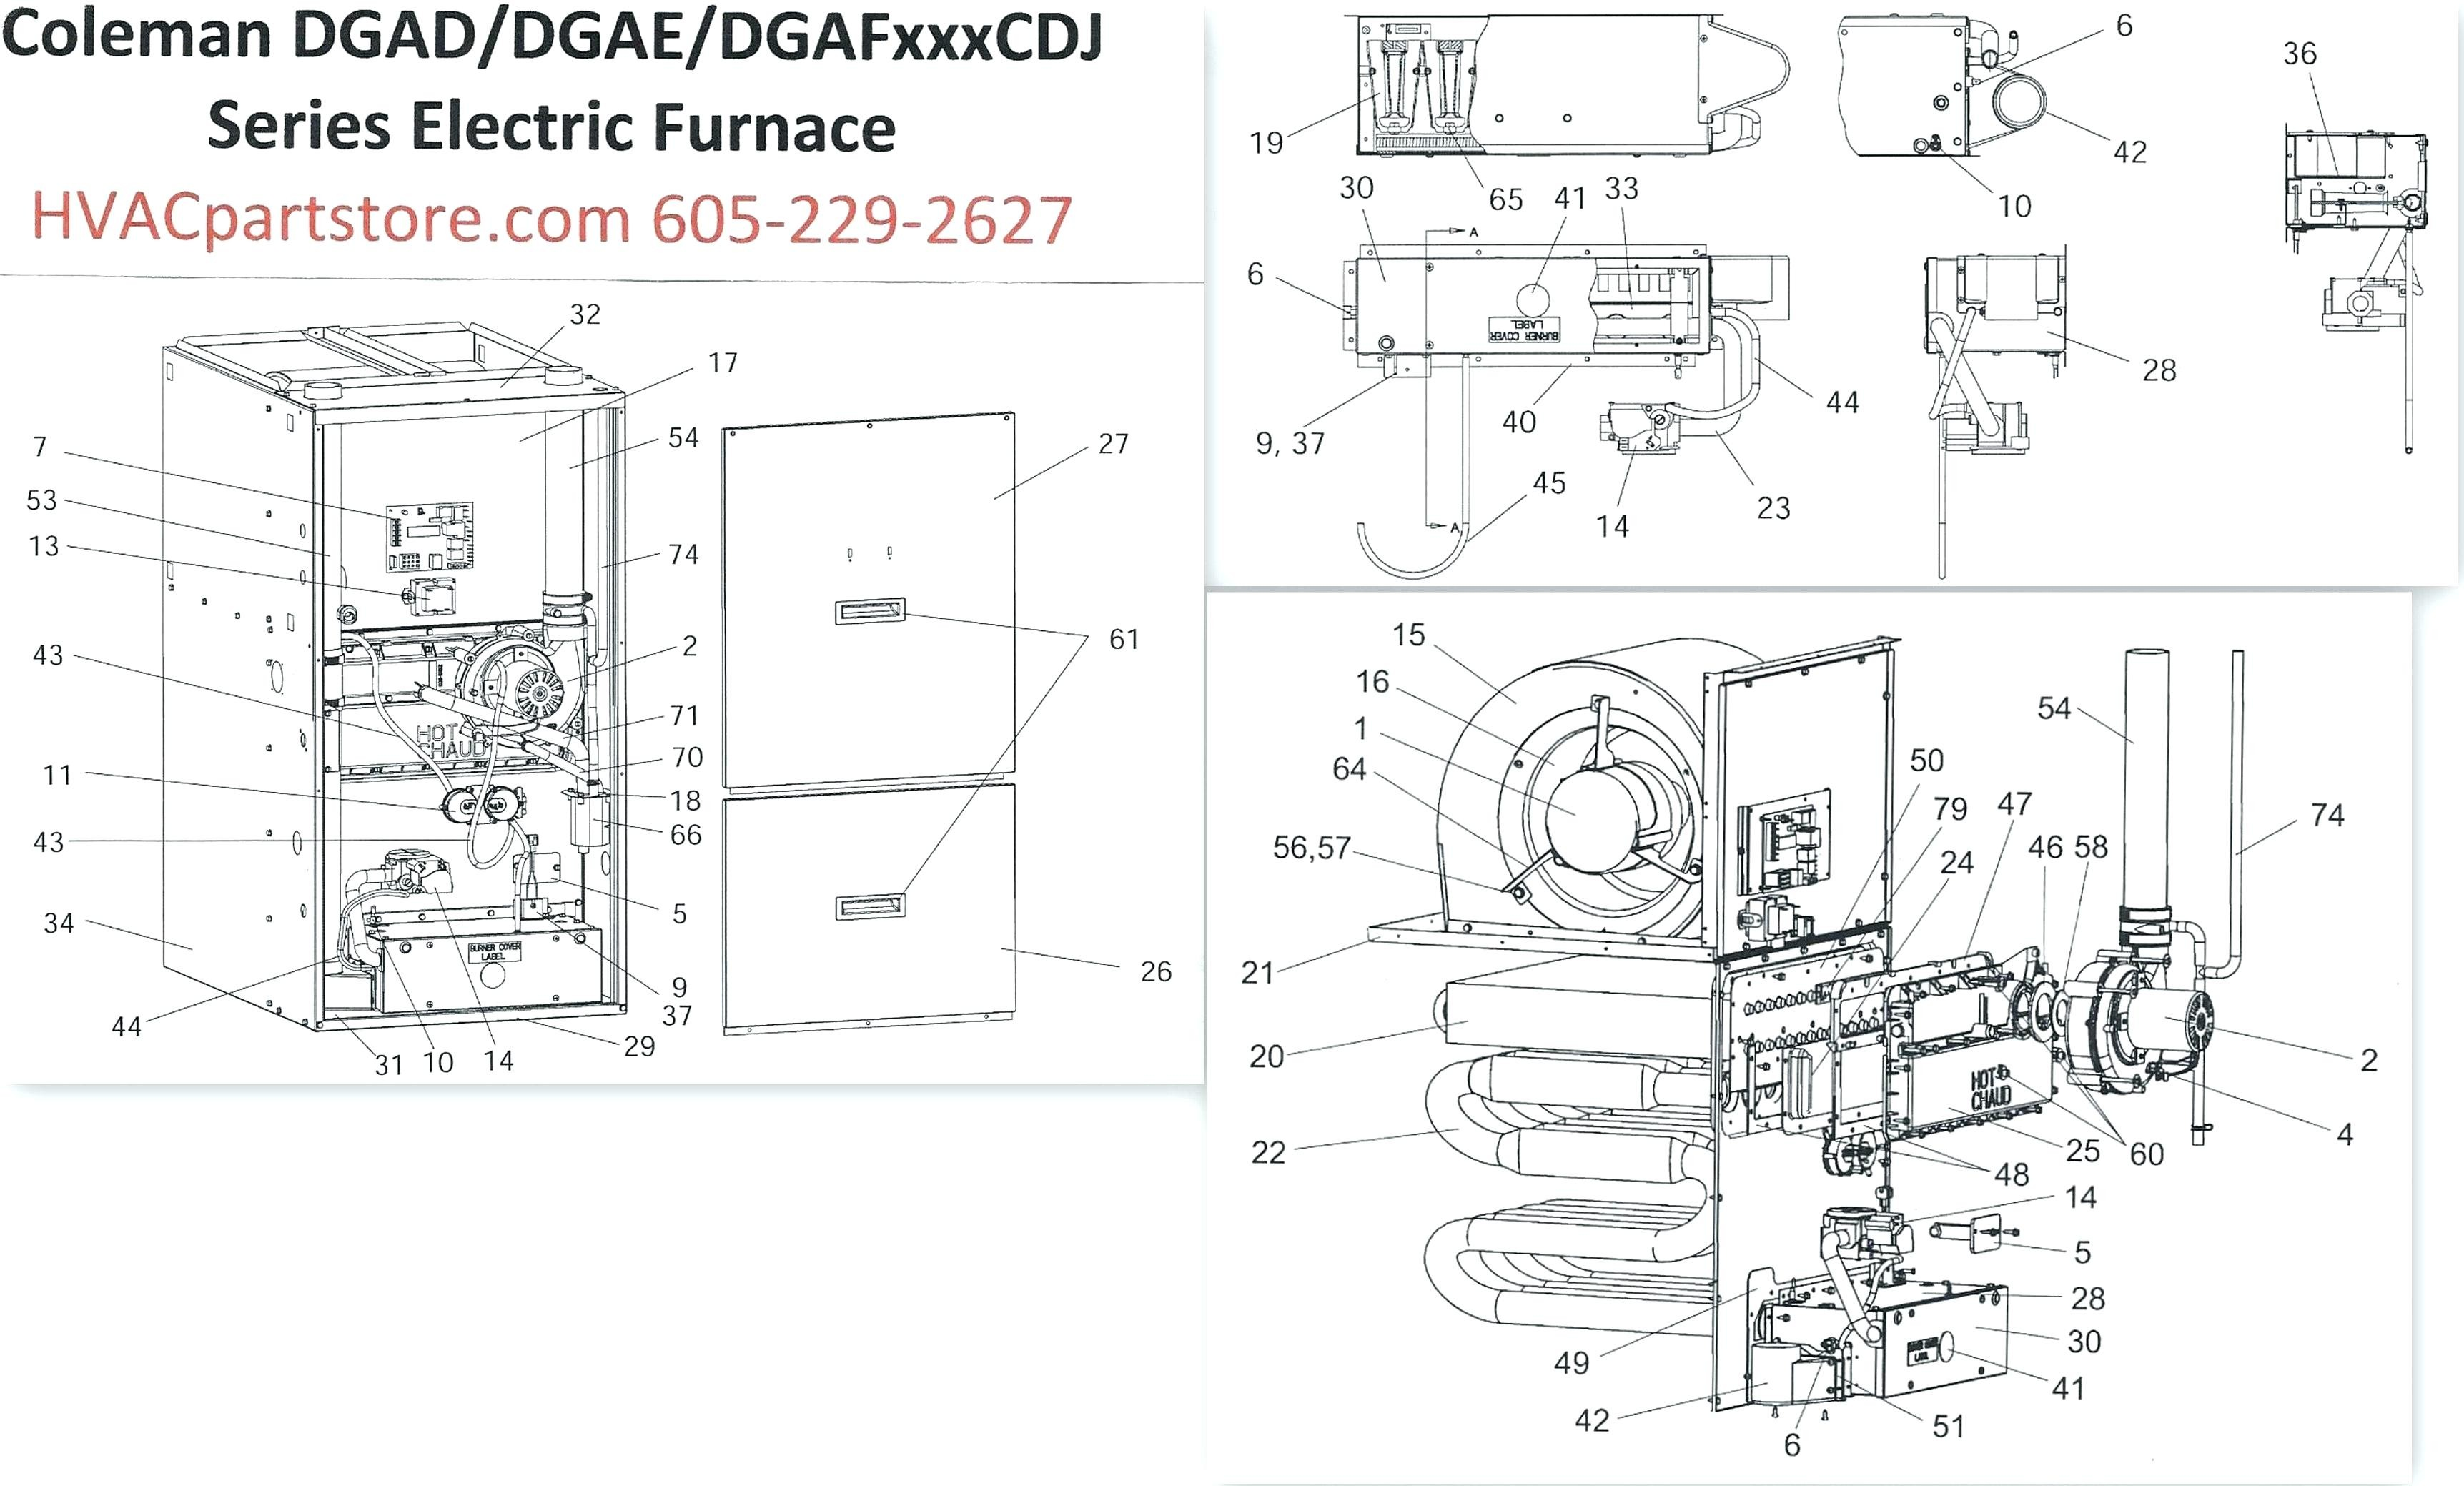 wiring diagram doorbell two chimes furnaces mobile home troubleshooting gallery free propane furnace new for full